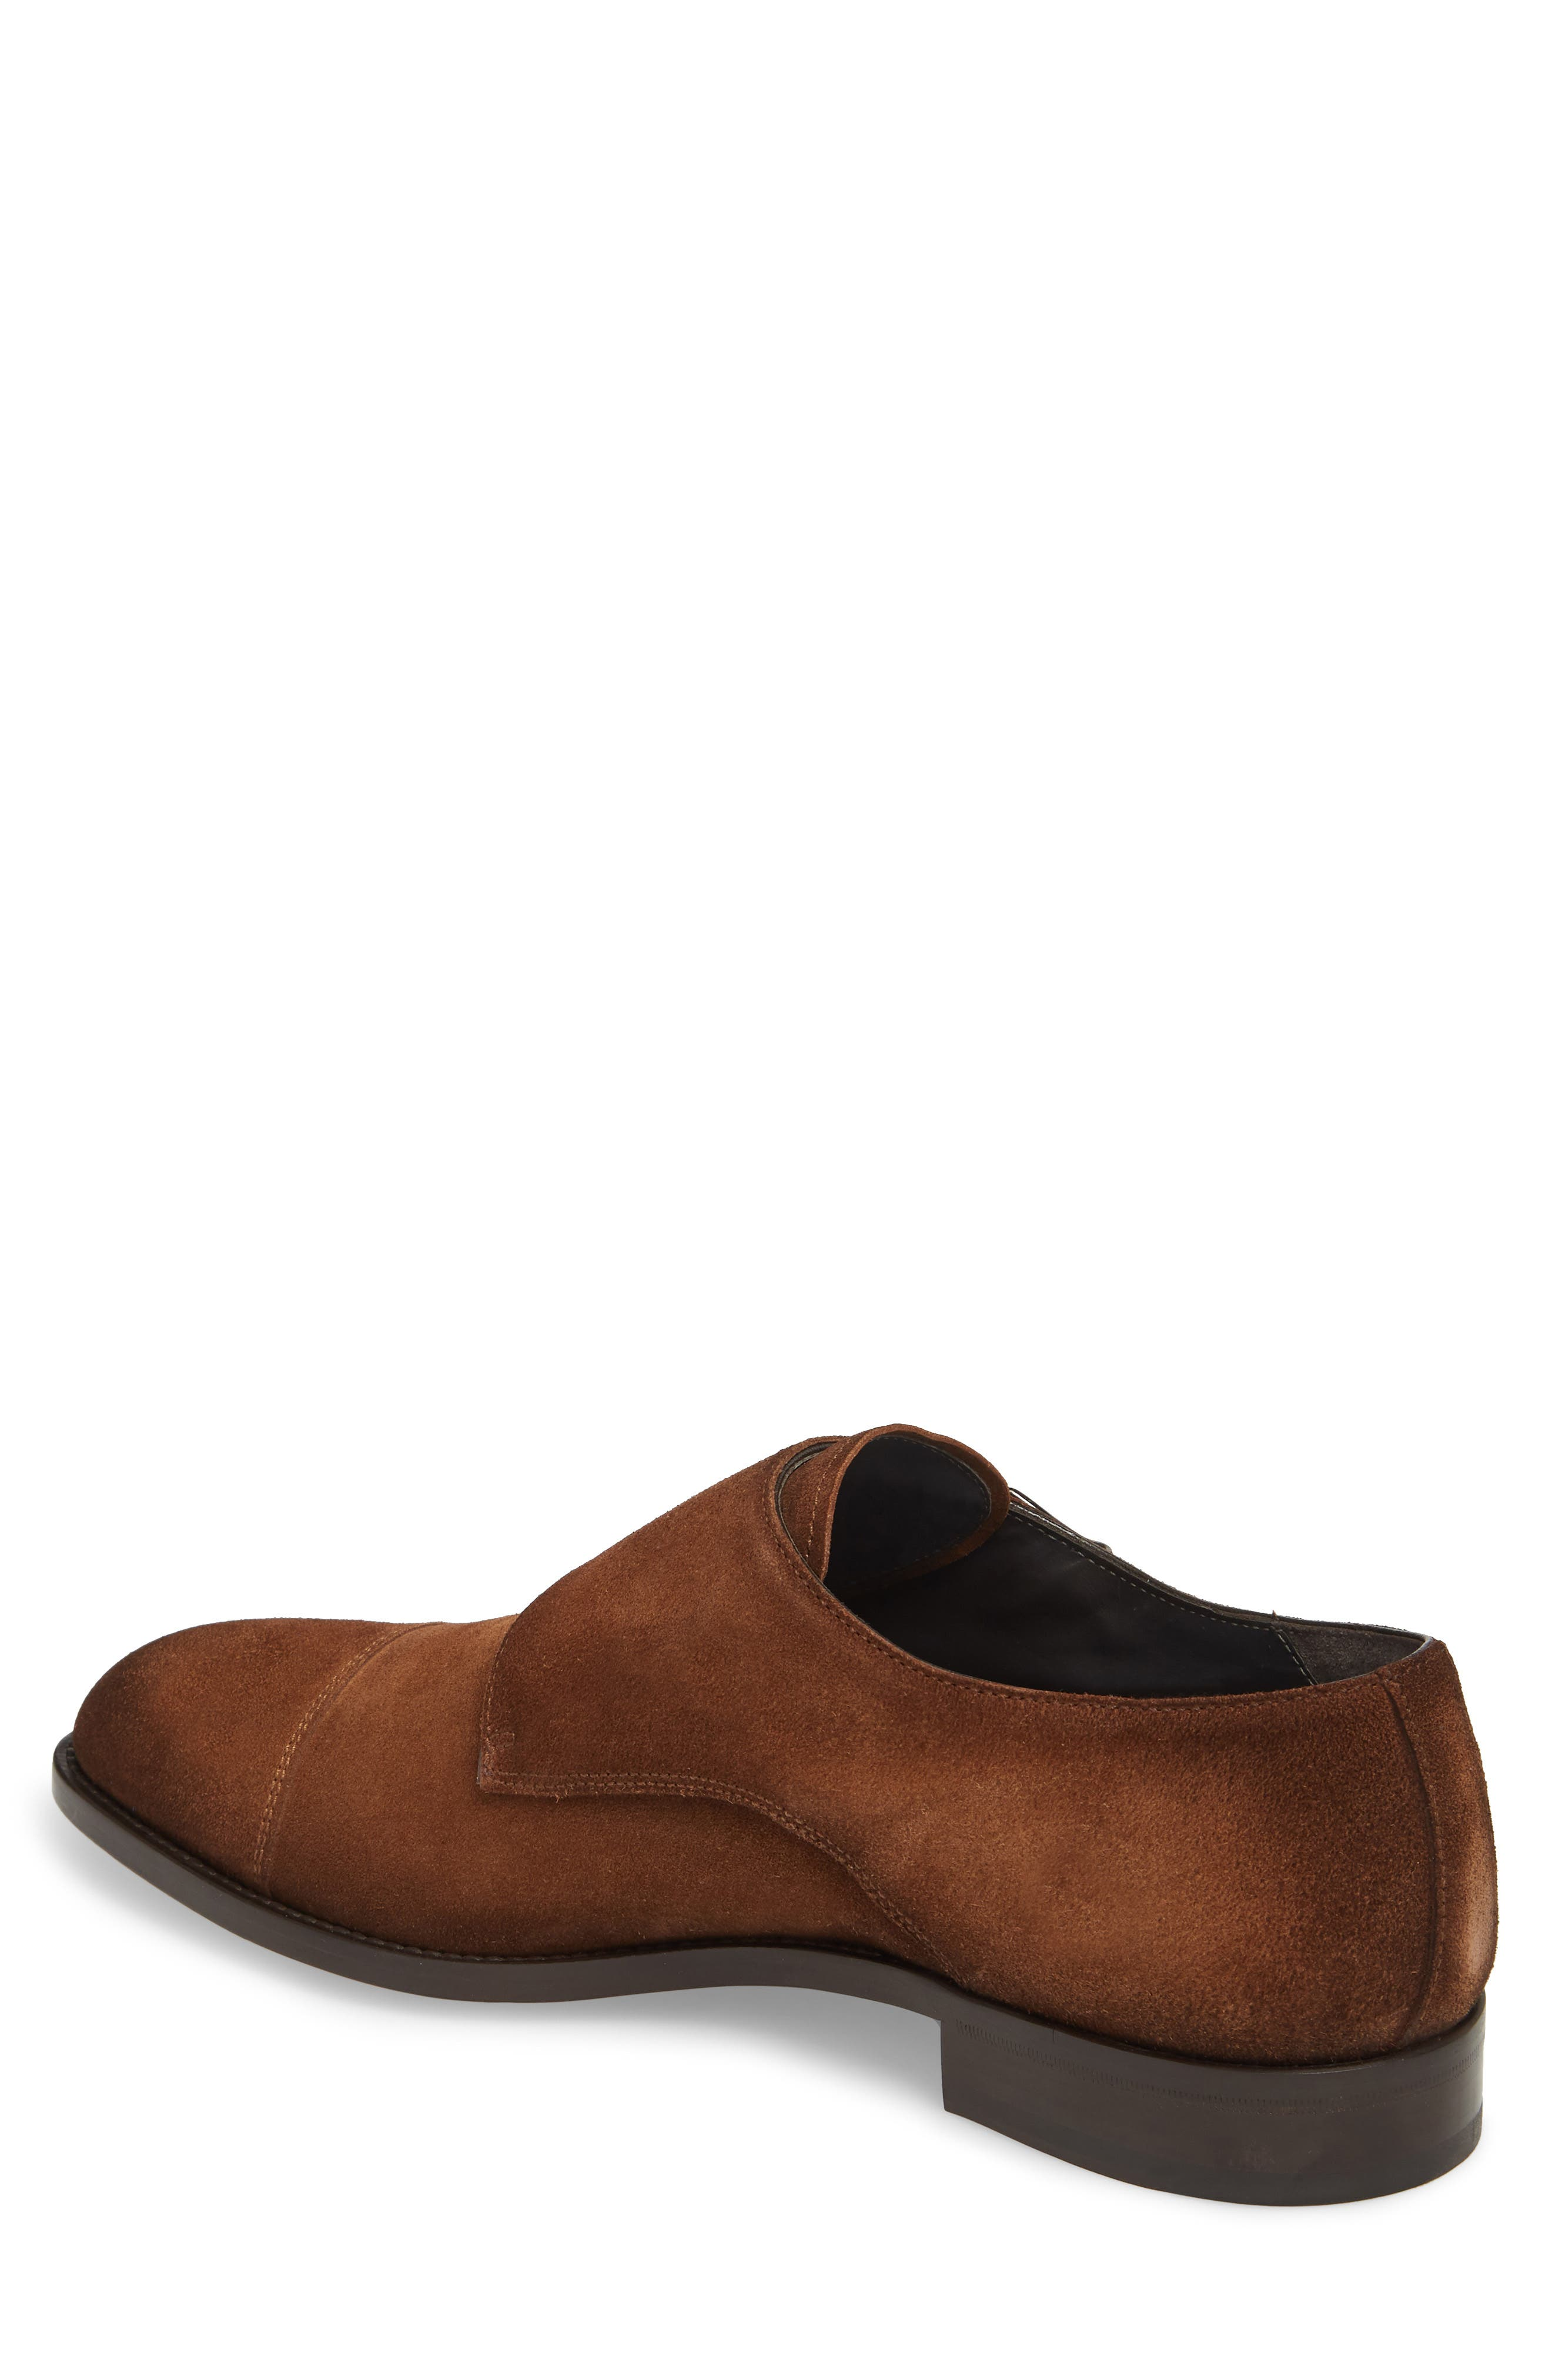 TO BOOT NEW YORK, Quentin Cap Toe Monk Shoe, Alternate thumbnail 2, color, BROWN SUEDE LEATHER